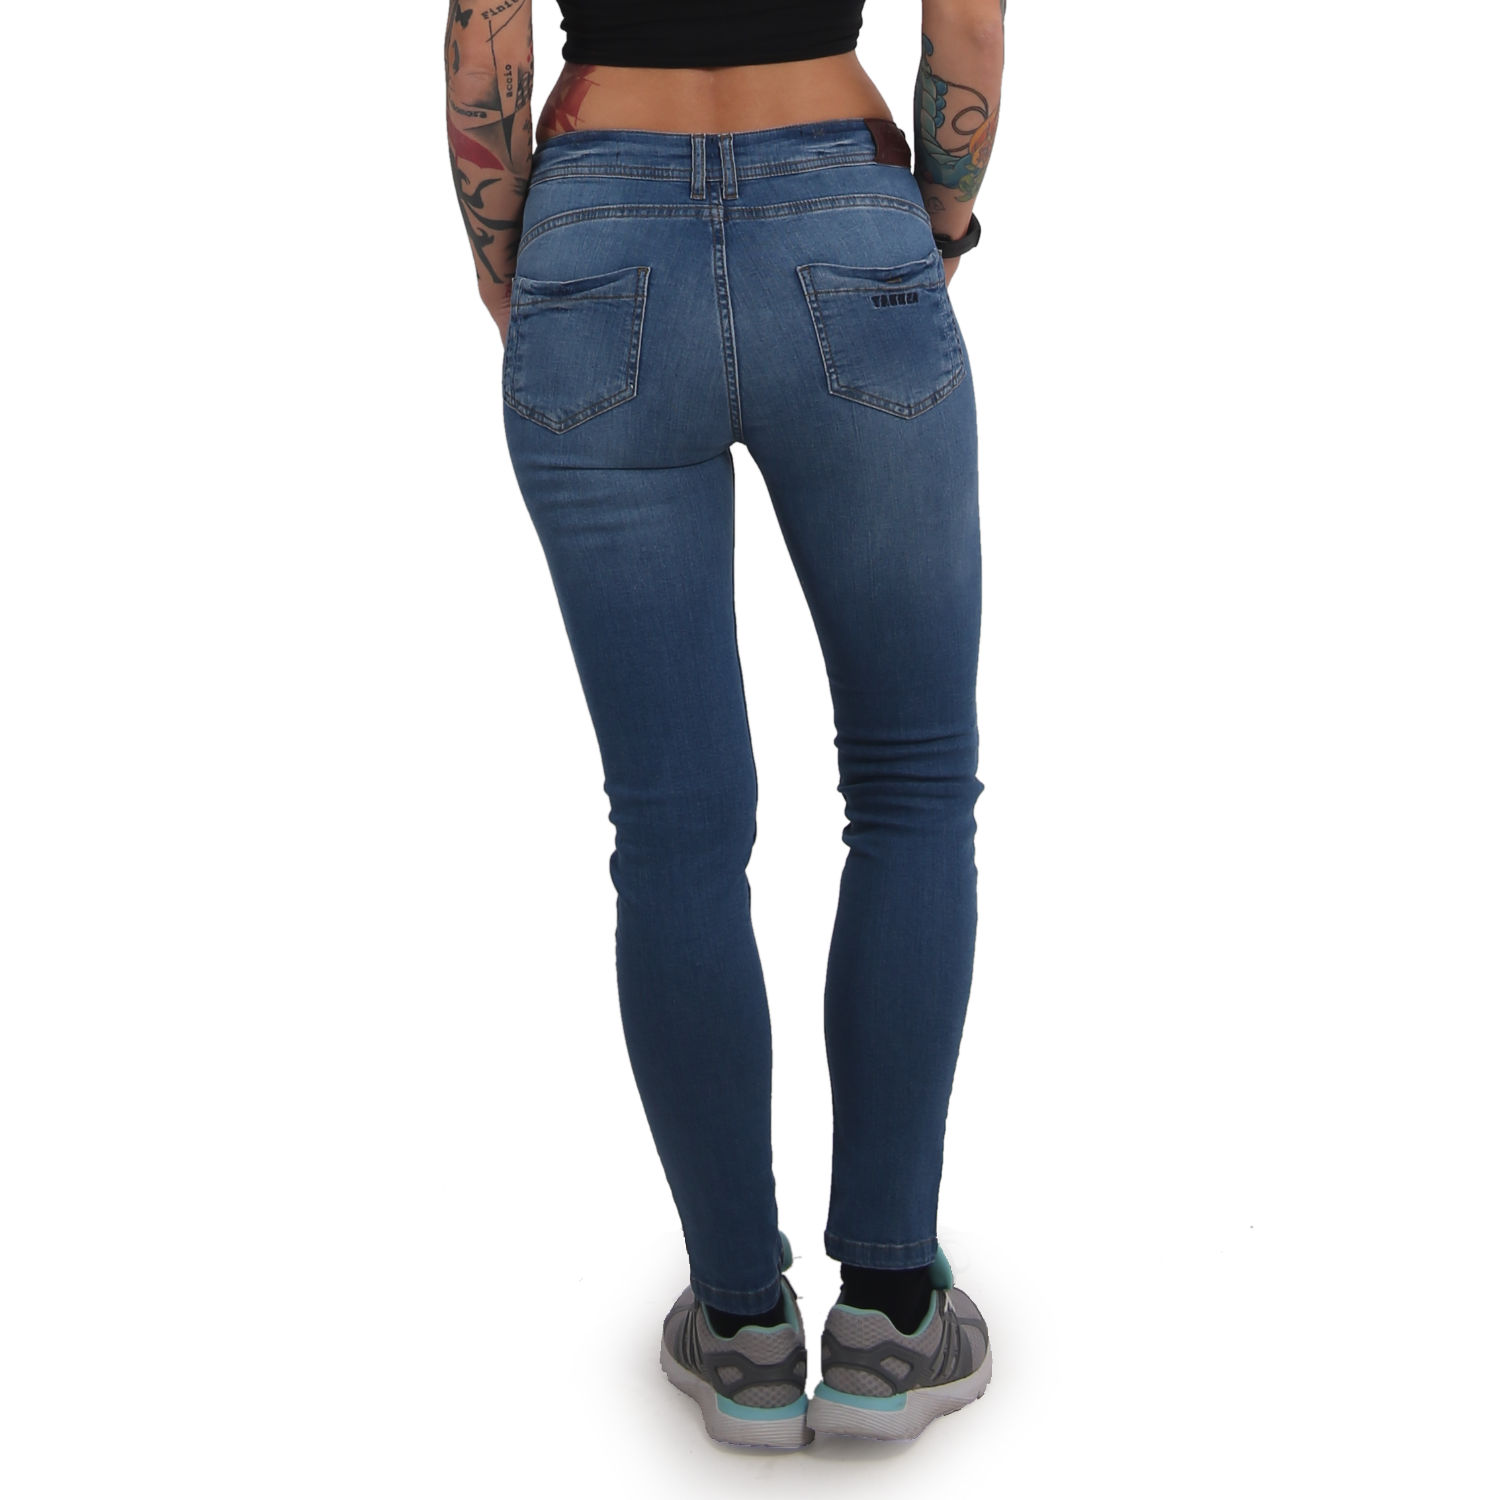 Fly Skinny Jeans